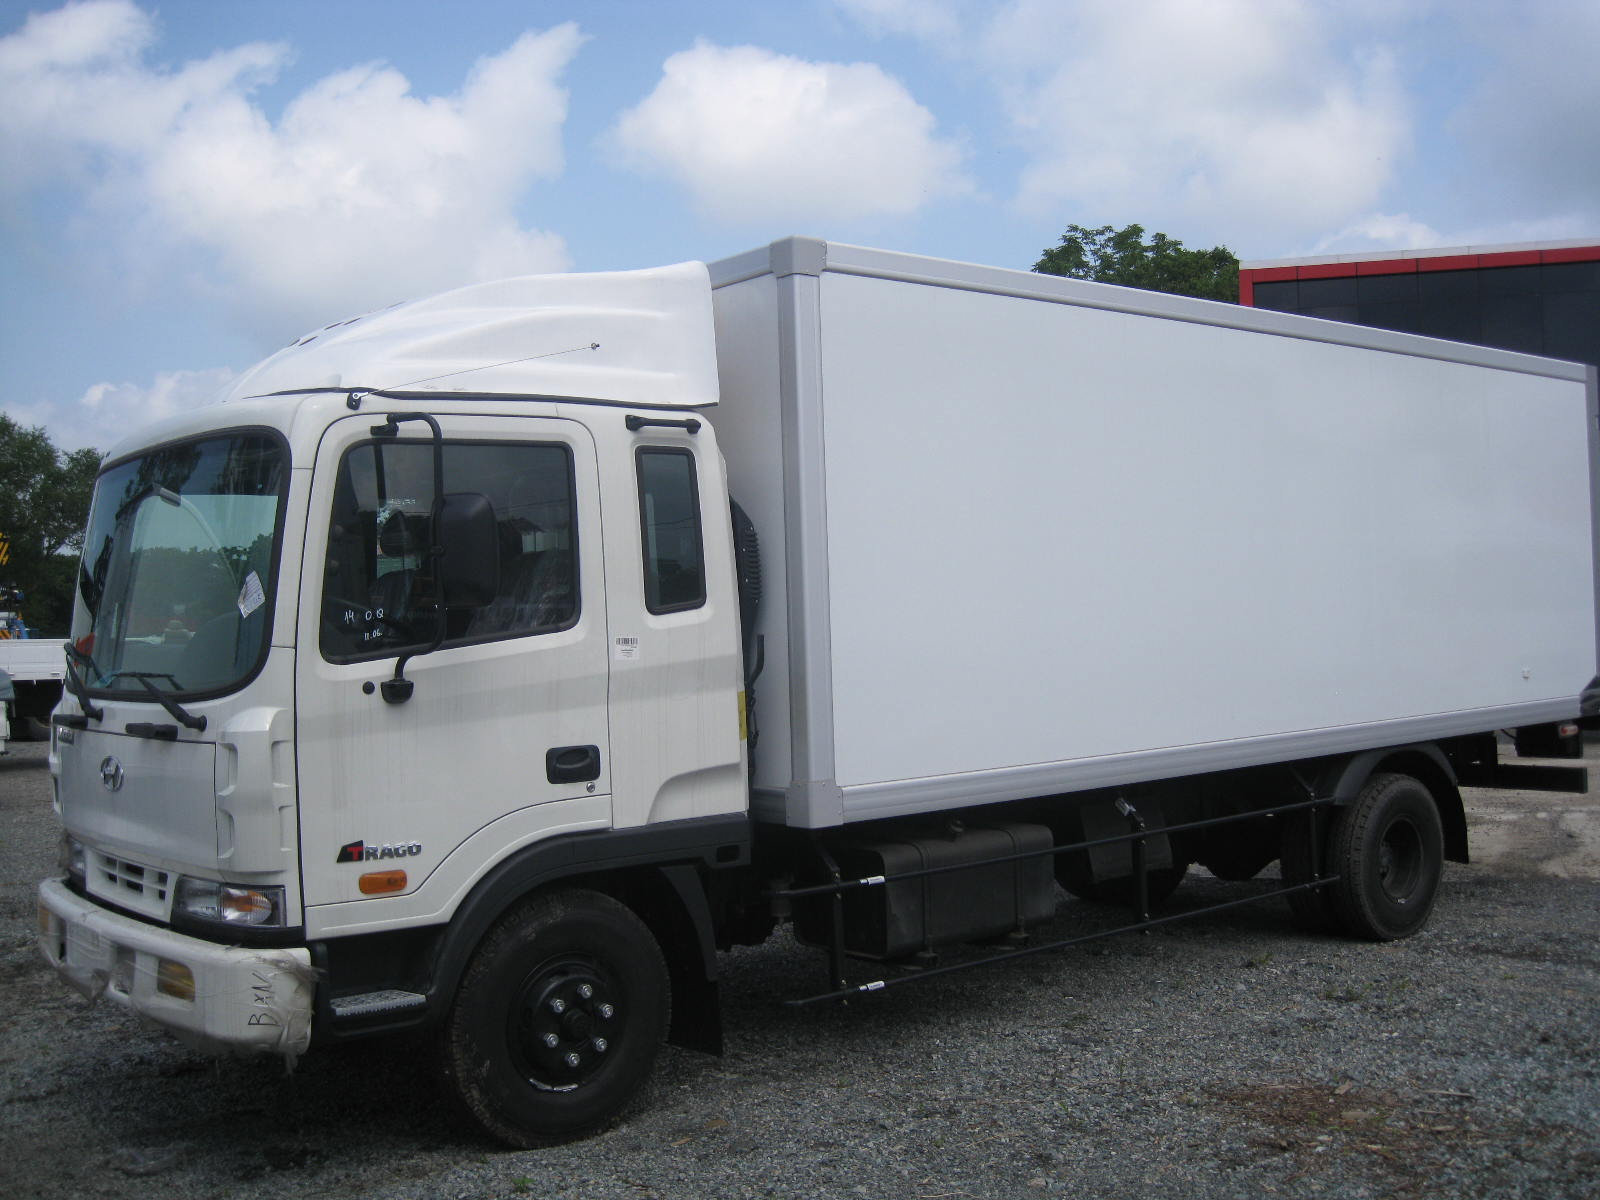 Hyundai hd120 photo - 2